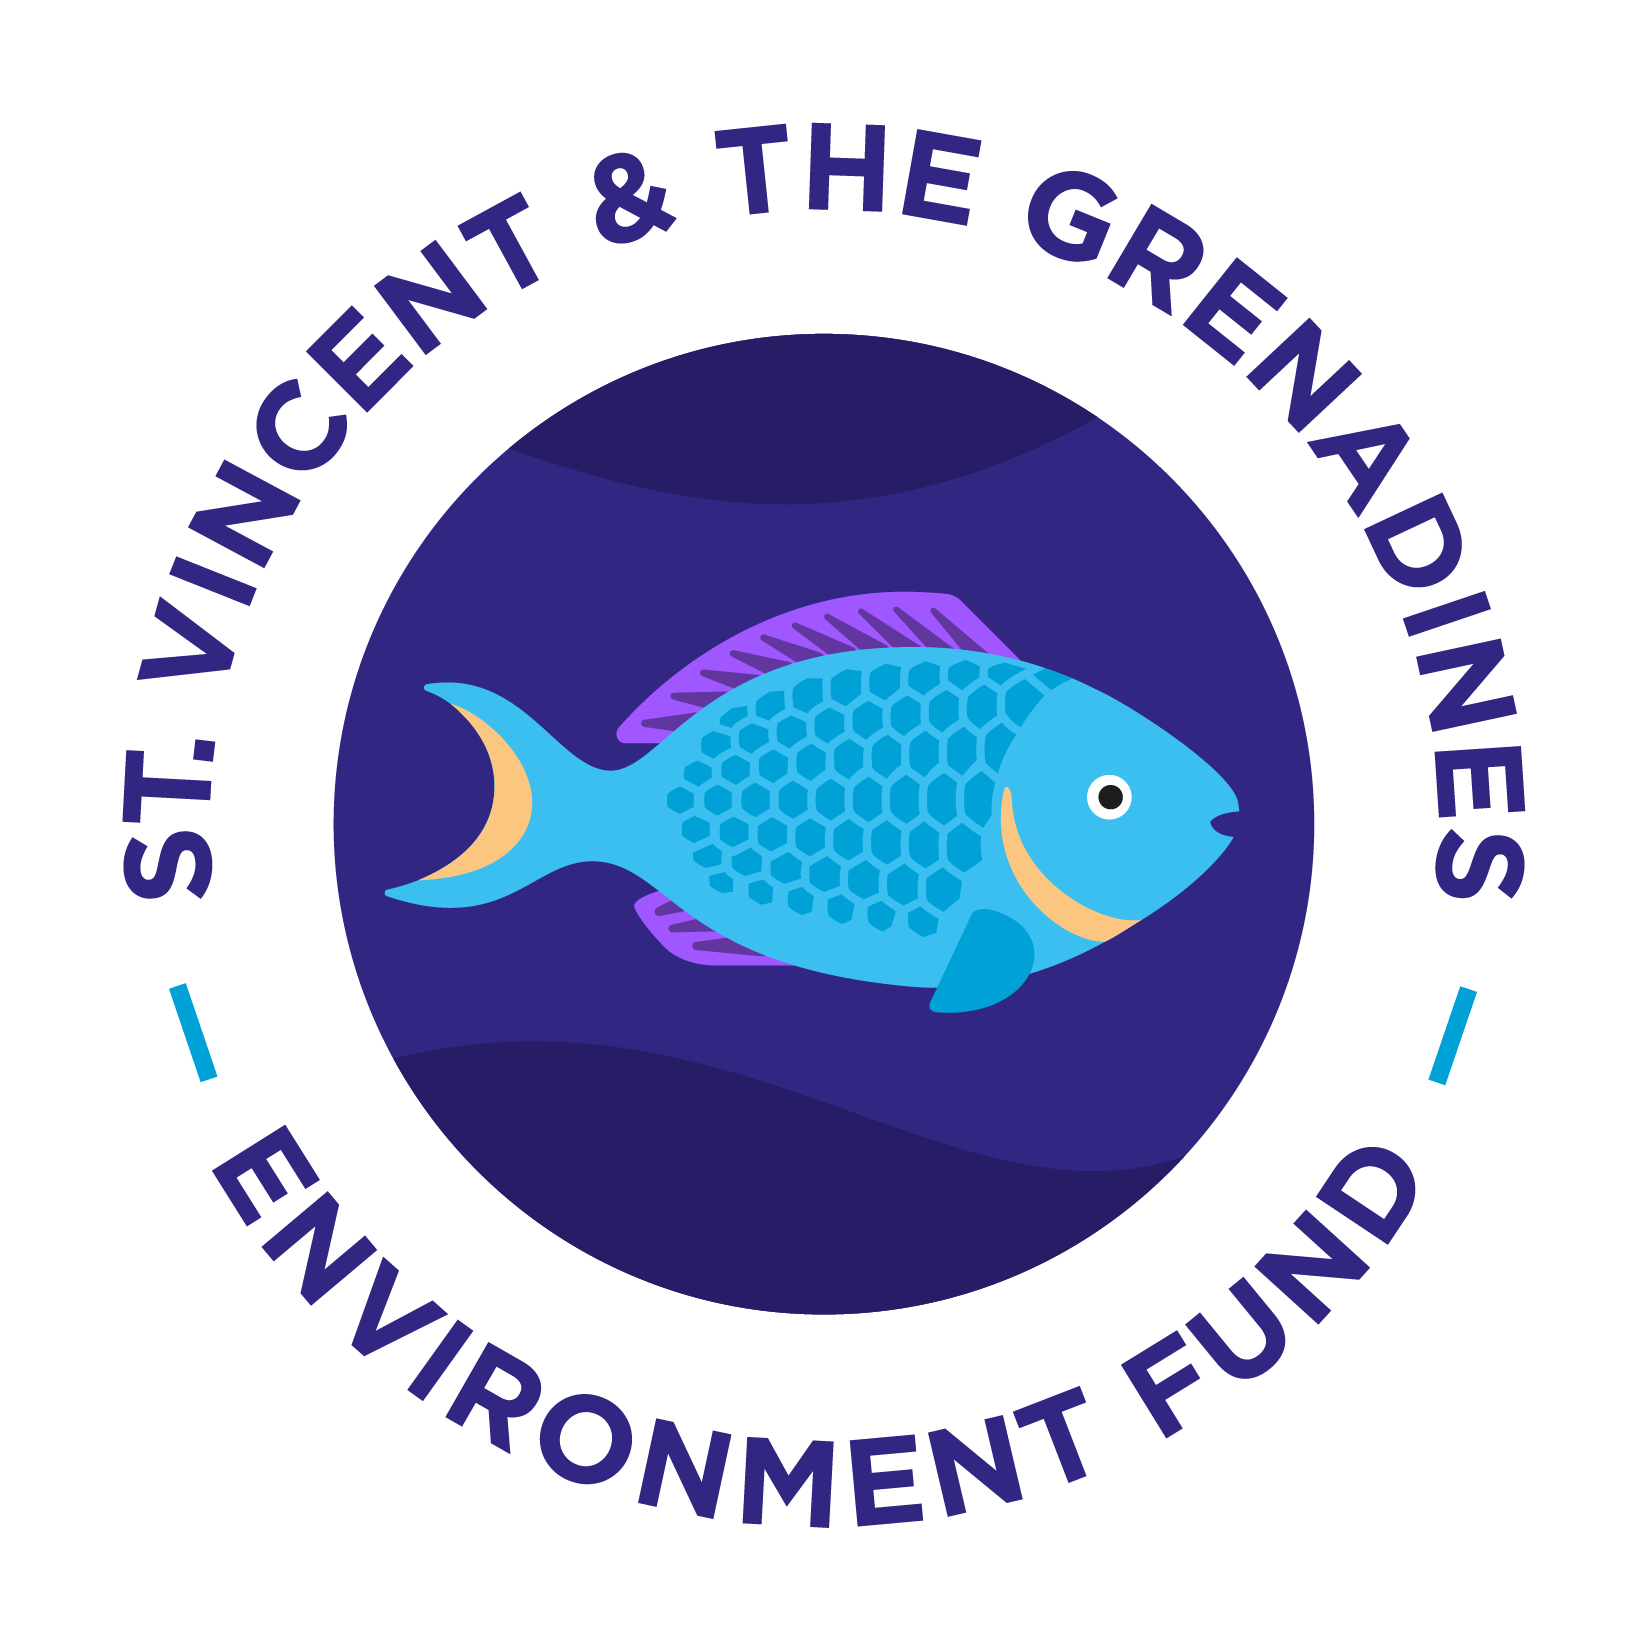 St. Vincent and the Grenadines Environment fund